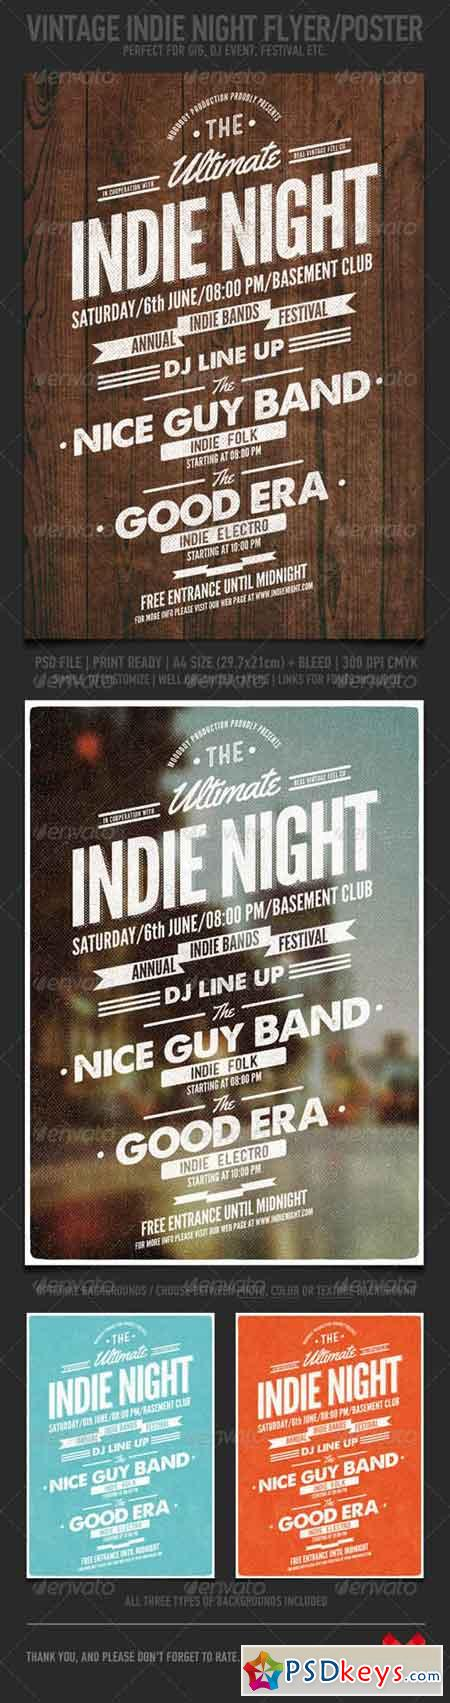 Vintage Indie Night Flyer Poster 7402686